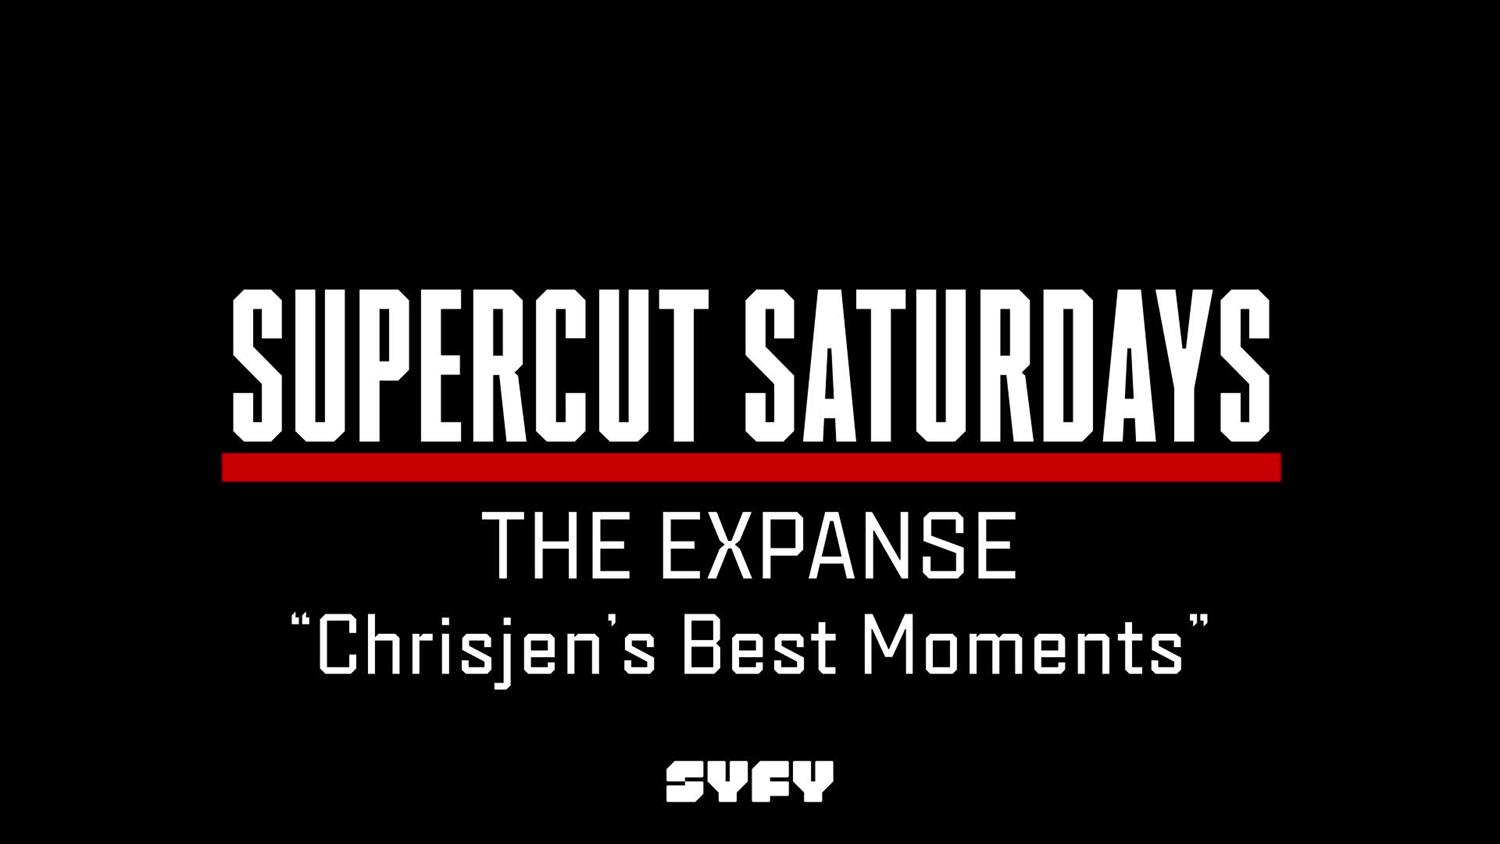 Supercut Saturdays - Chrisjen's Best Moments